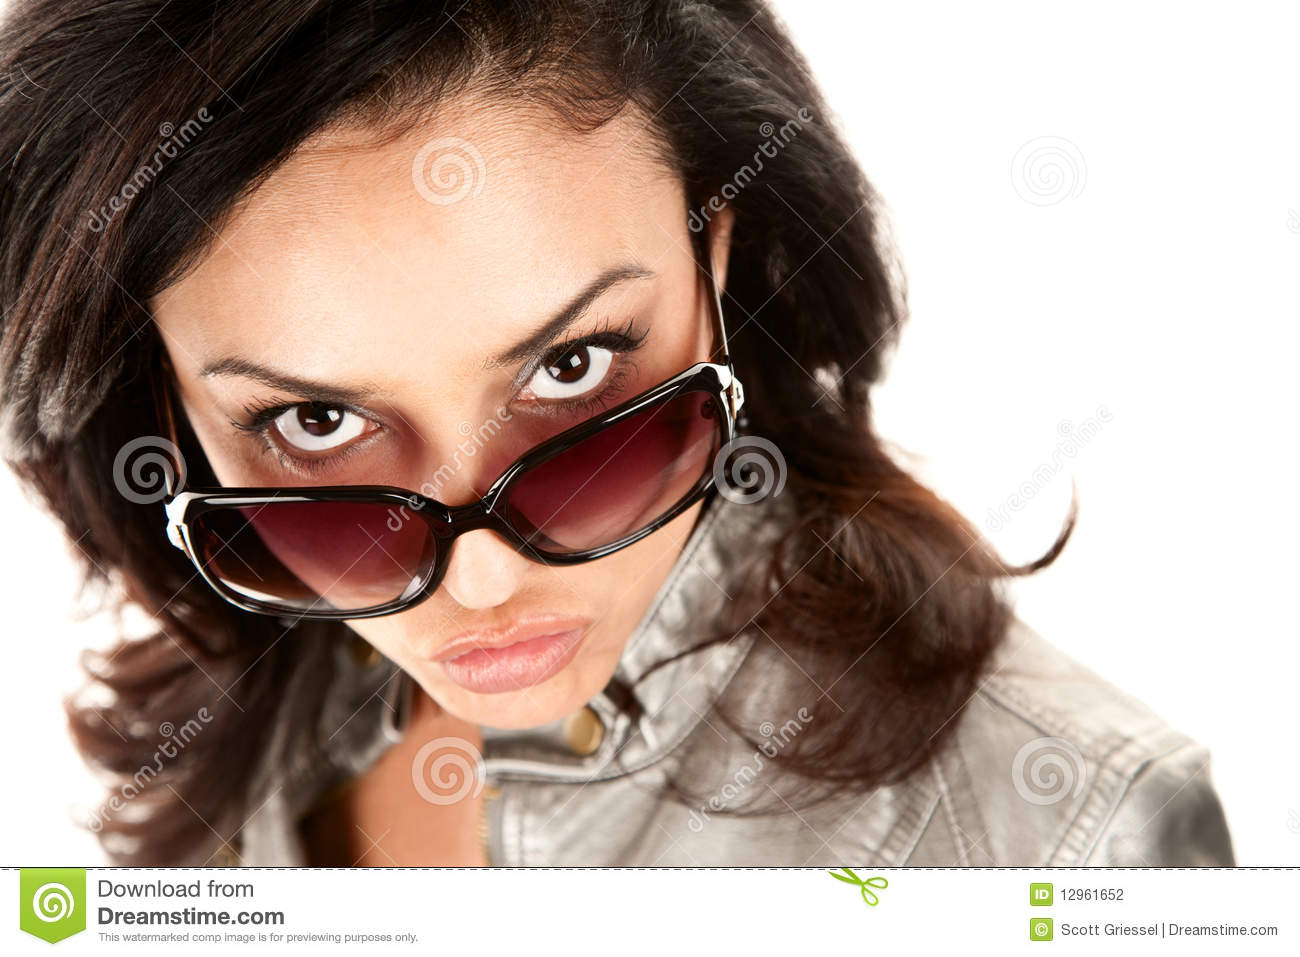 https://thumbs.dreamstime.com/z/pretty-latina-woman-looking-over-her-glasses-12961652.jpg